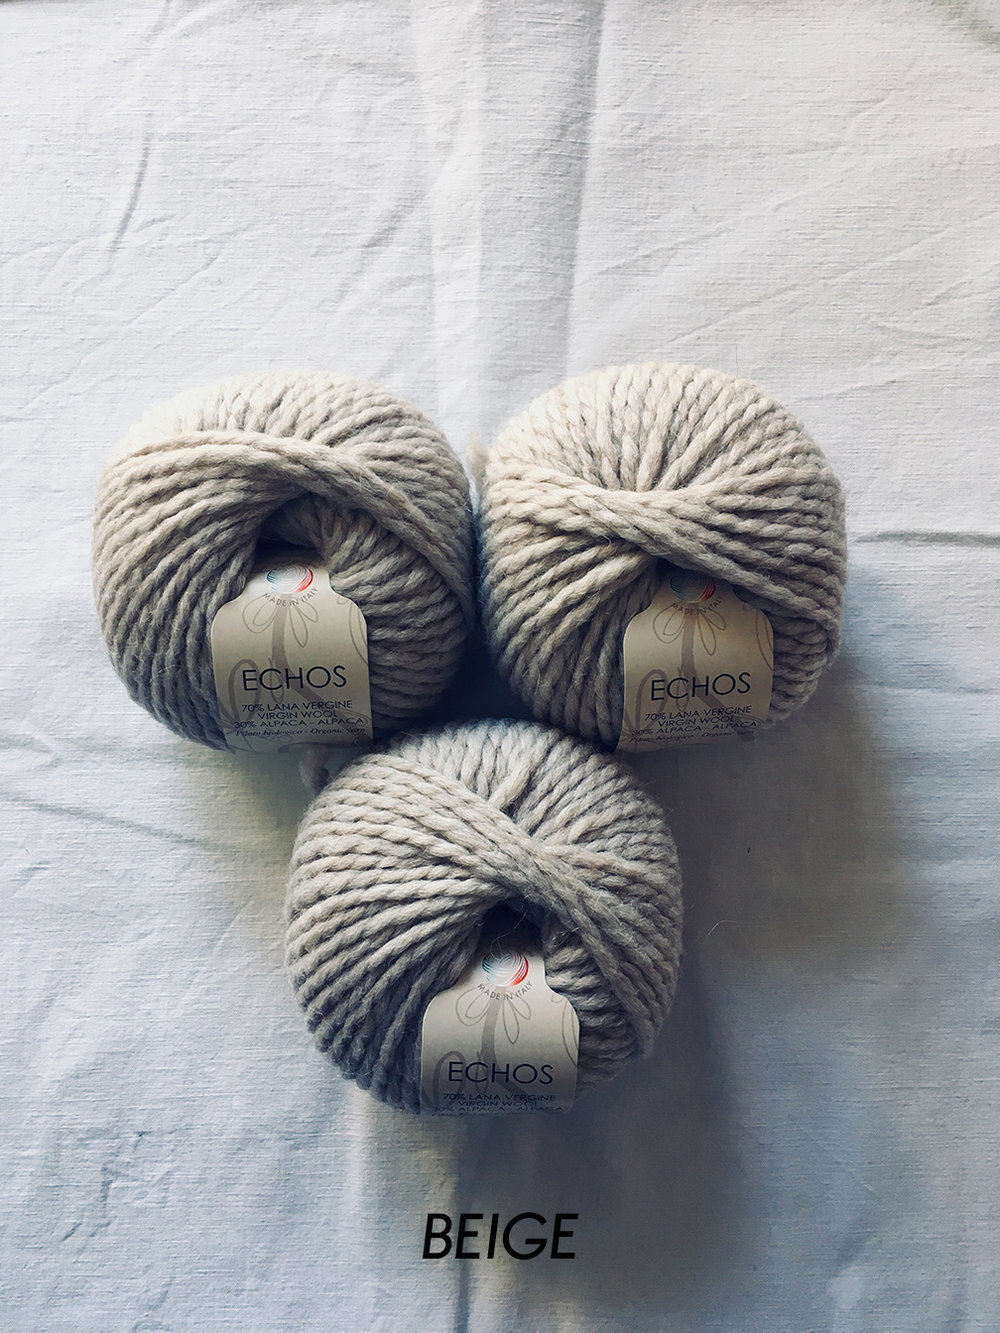 sesia_echos_beige_1494_wool_done_knitting.jpg